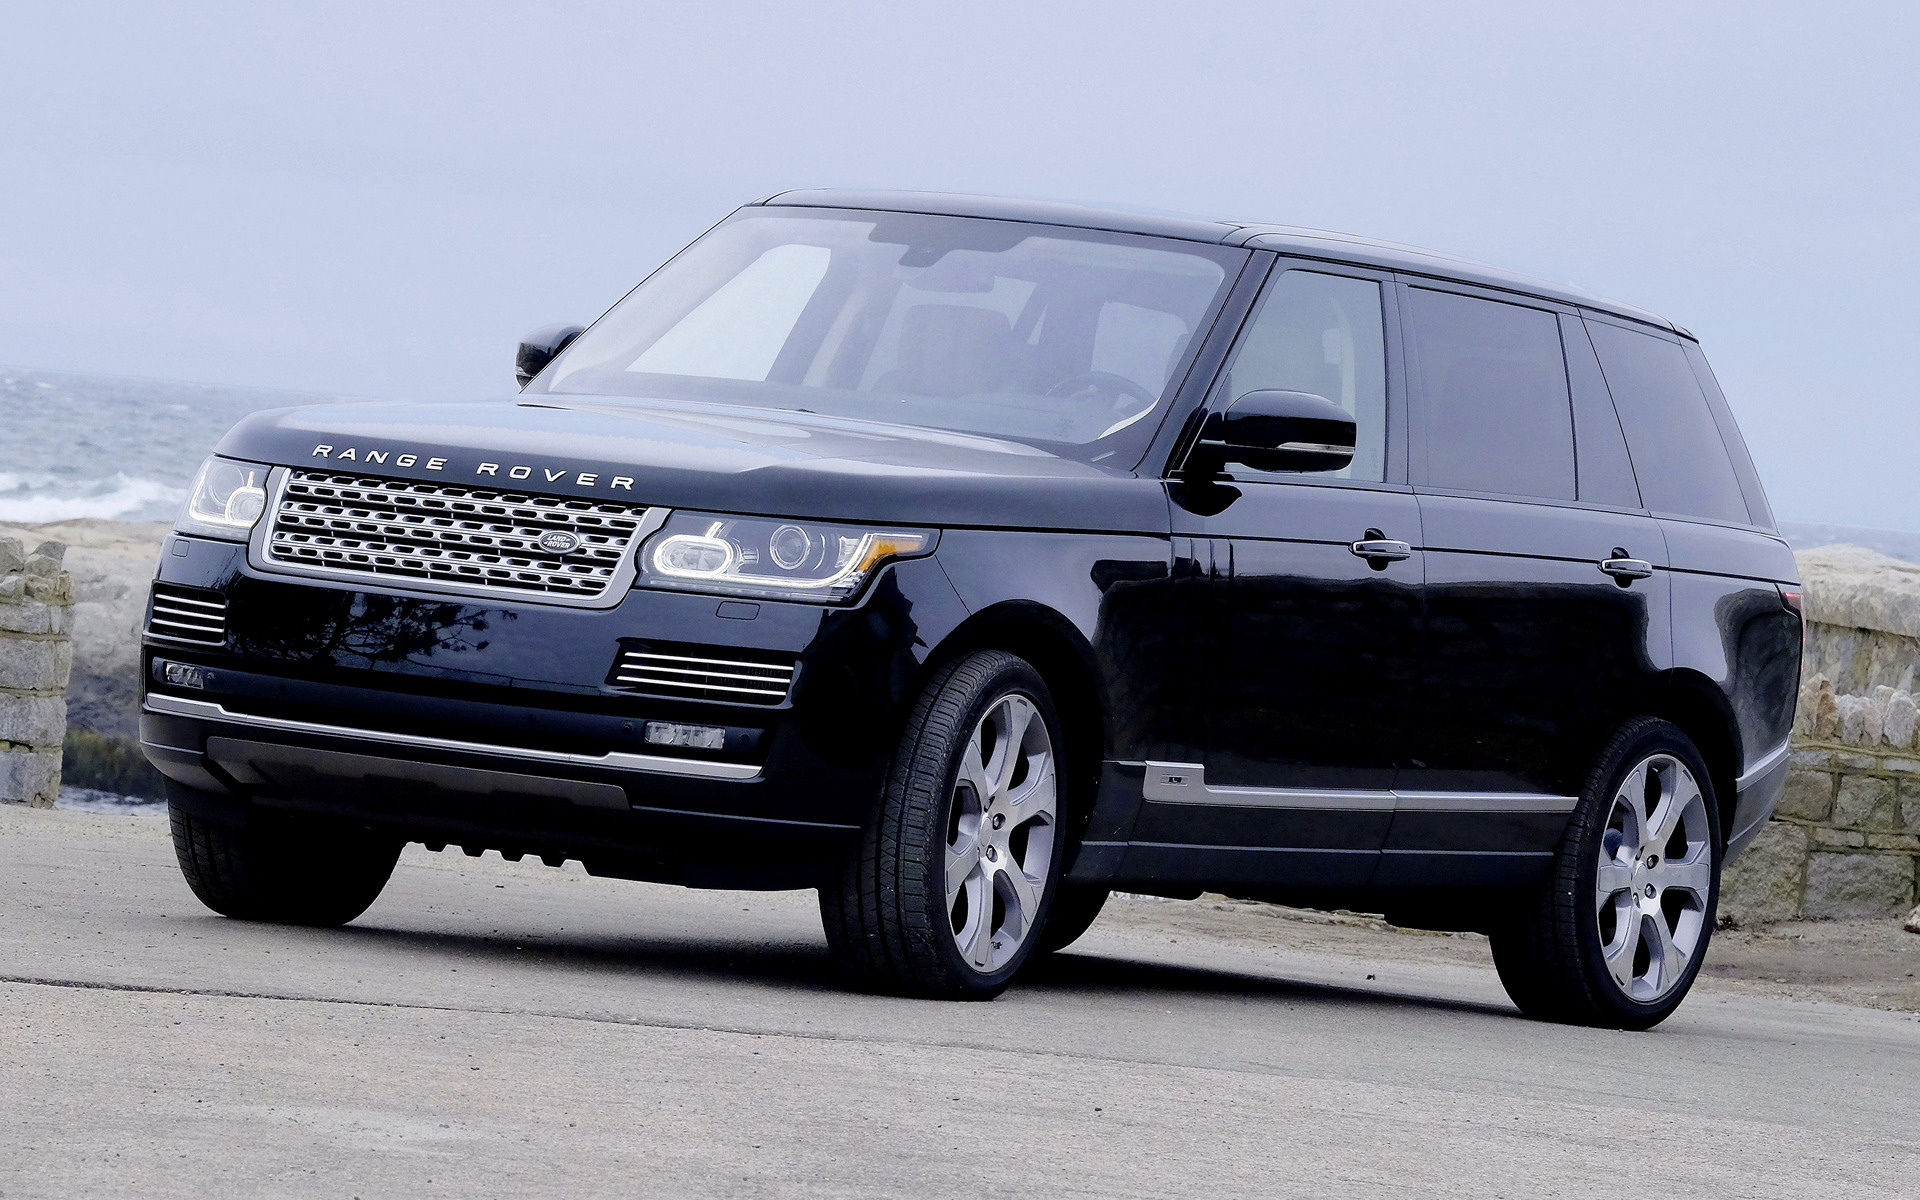 Range Rover Autobiography [LWB] 2014 US Wallpapers and HD